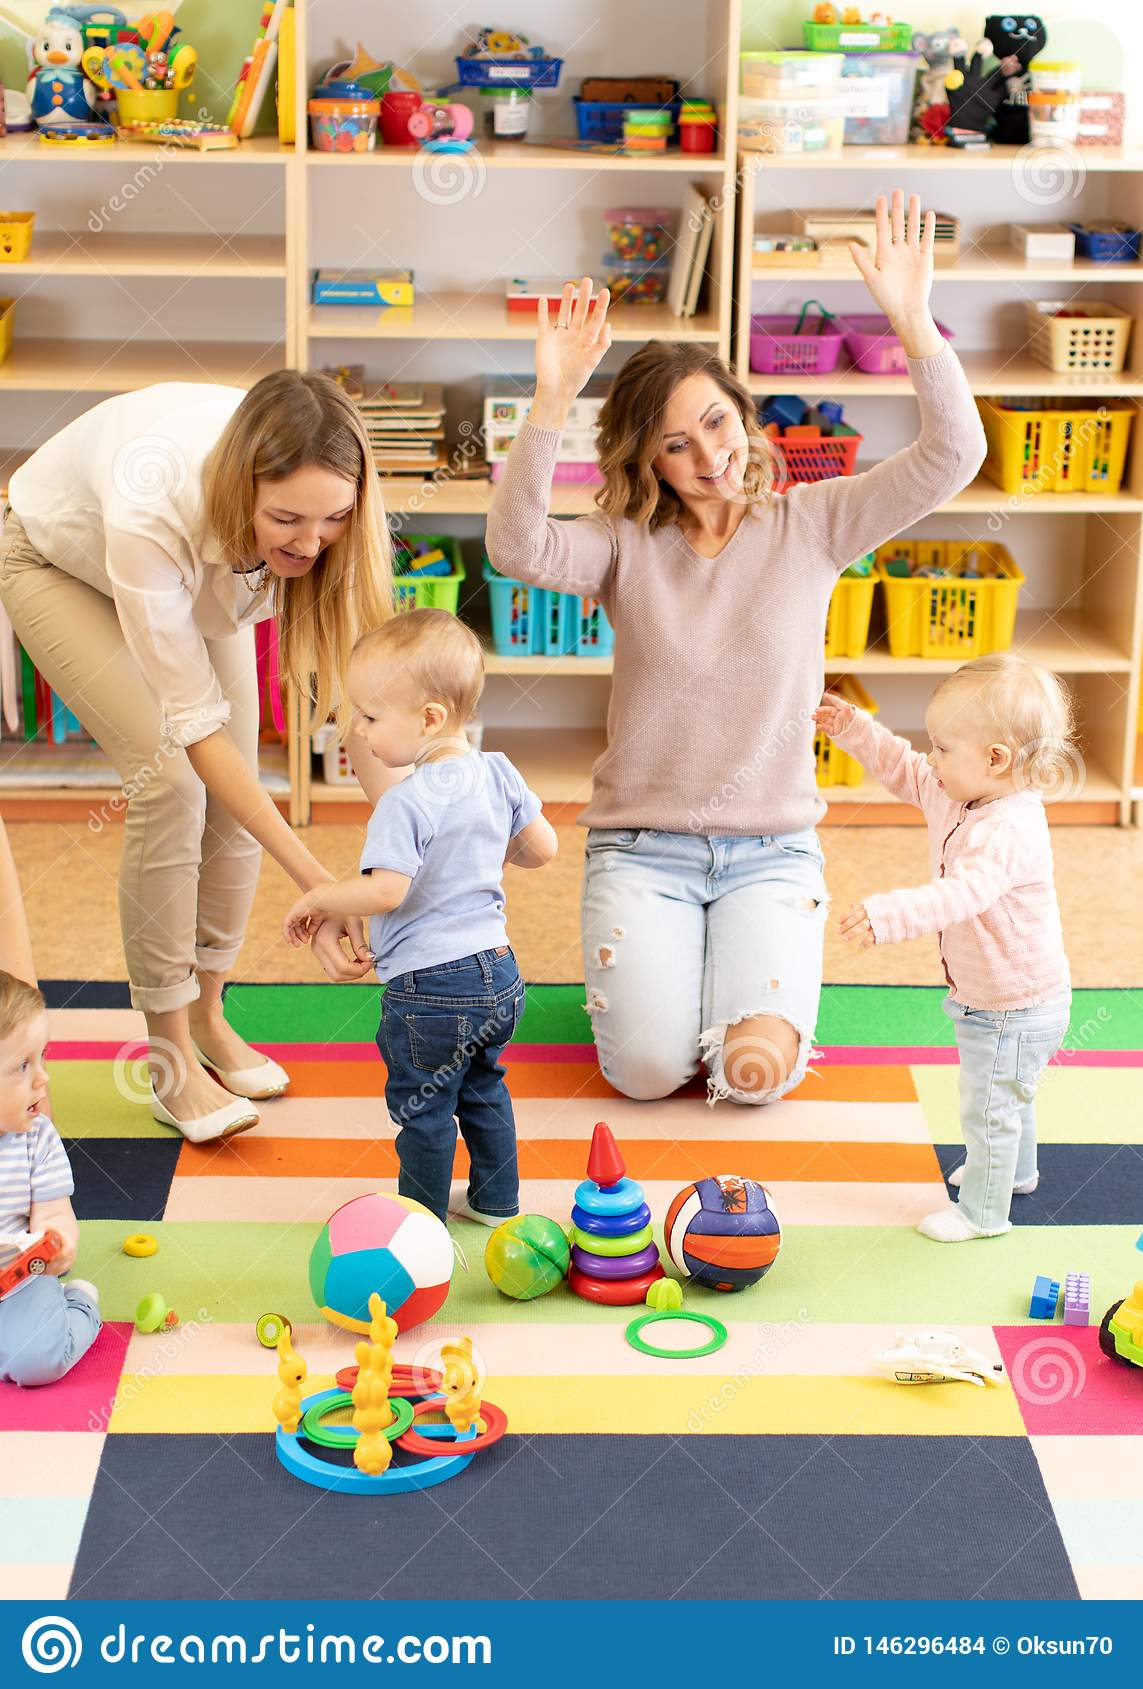 Babies toddlers playing with colorful educational toys together with mothers in nursery room